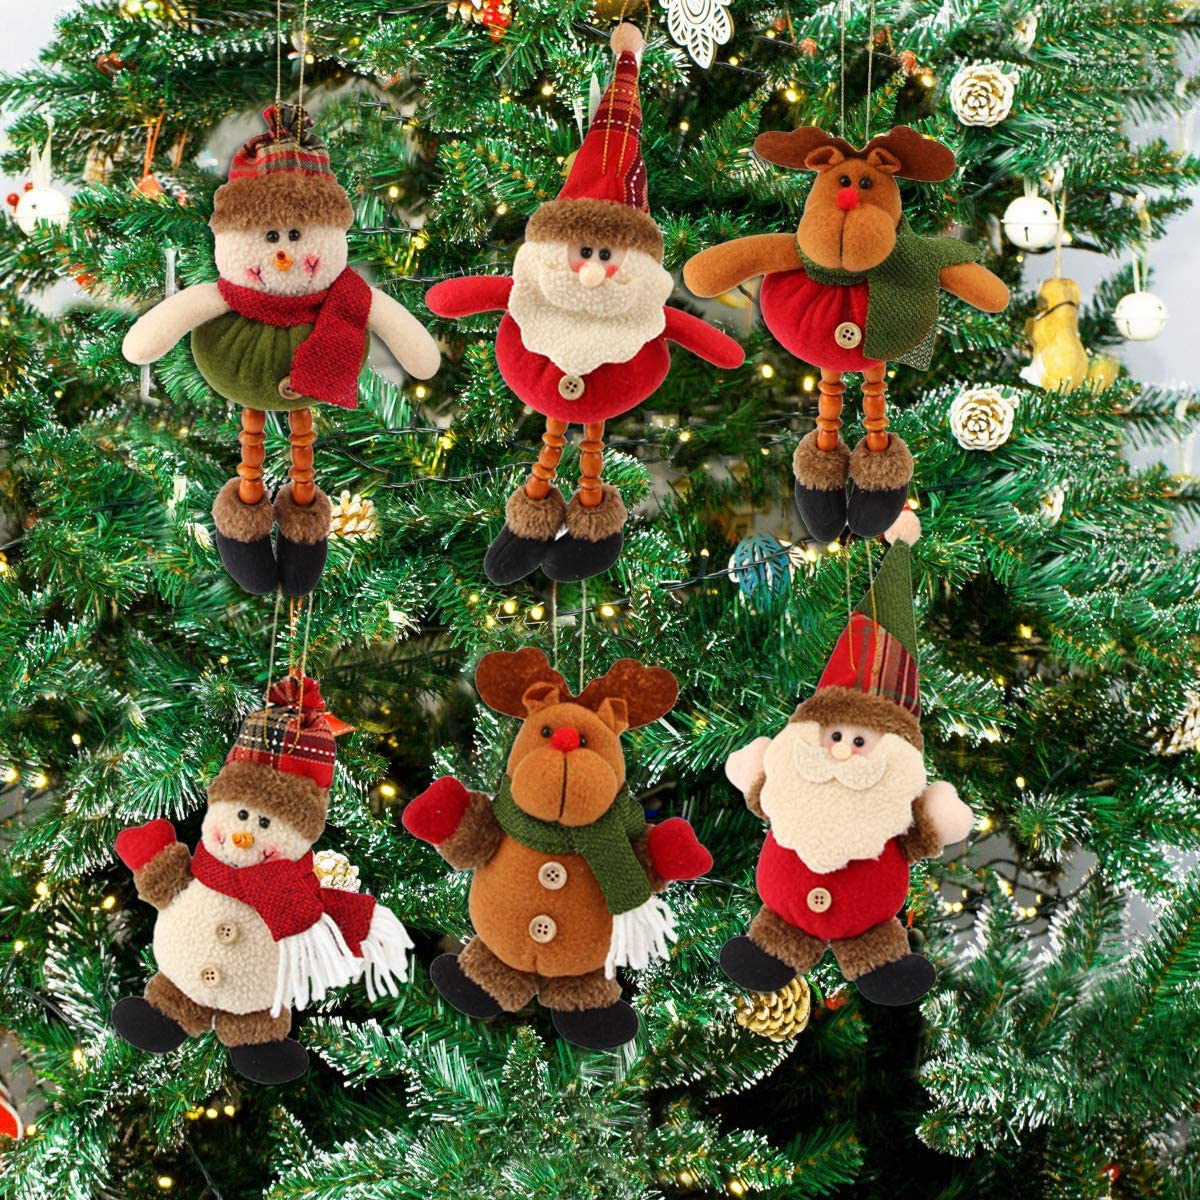 Christmas Plush Ornaments, FUNYU Xmas Hanging Decoration Santa Clause Snowman Reindeer Doll for Christmas Tree Pendant Stocking Ball Bell Holiday Party Decor (6 Pack)